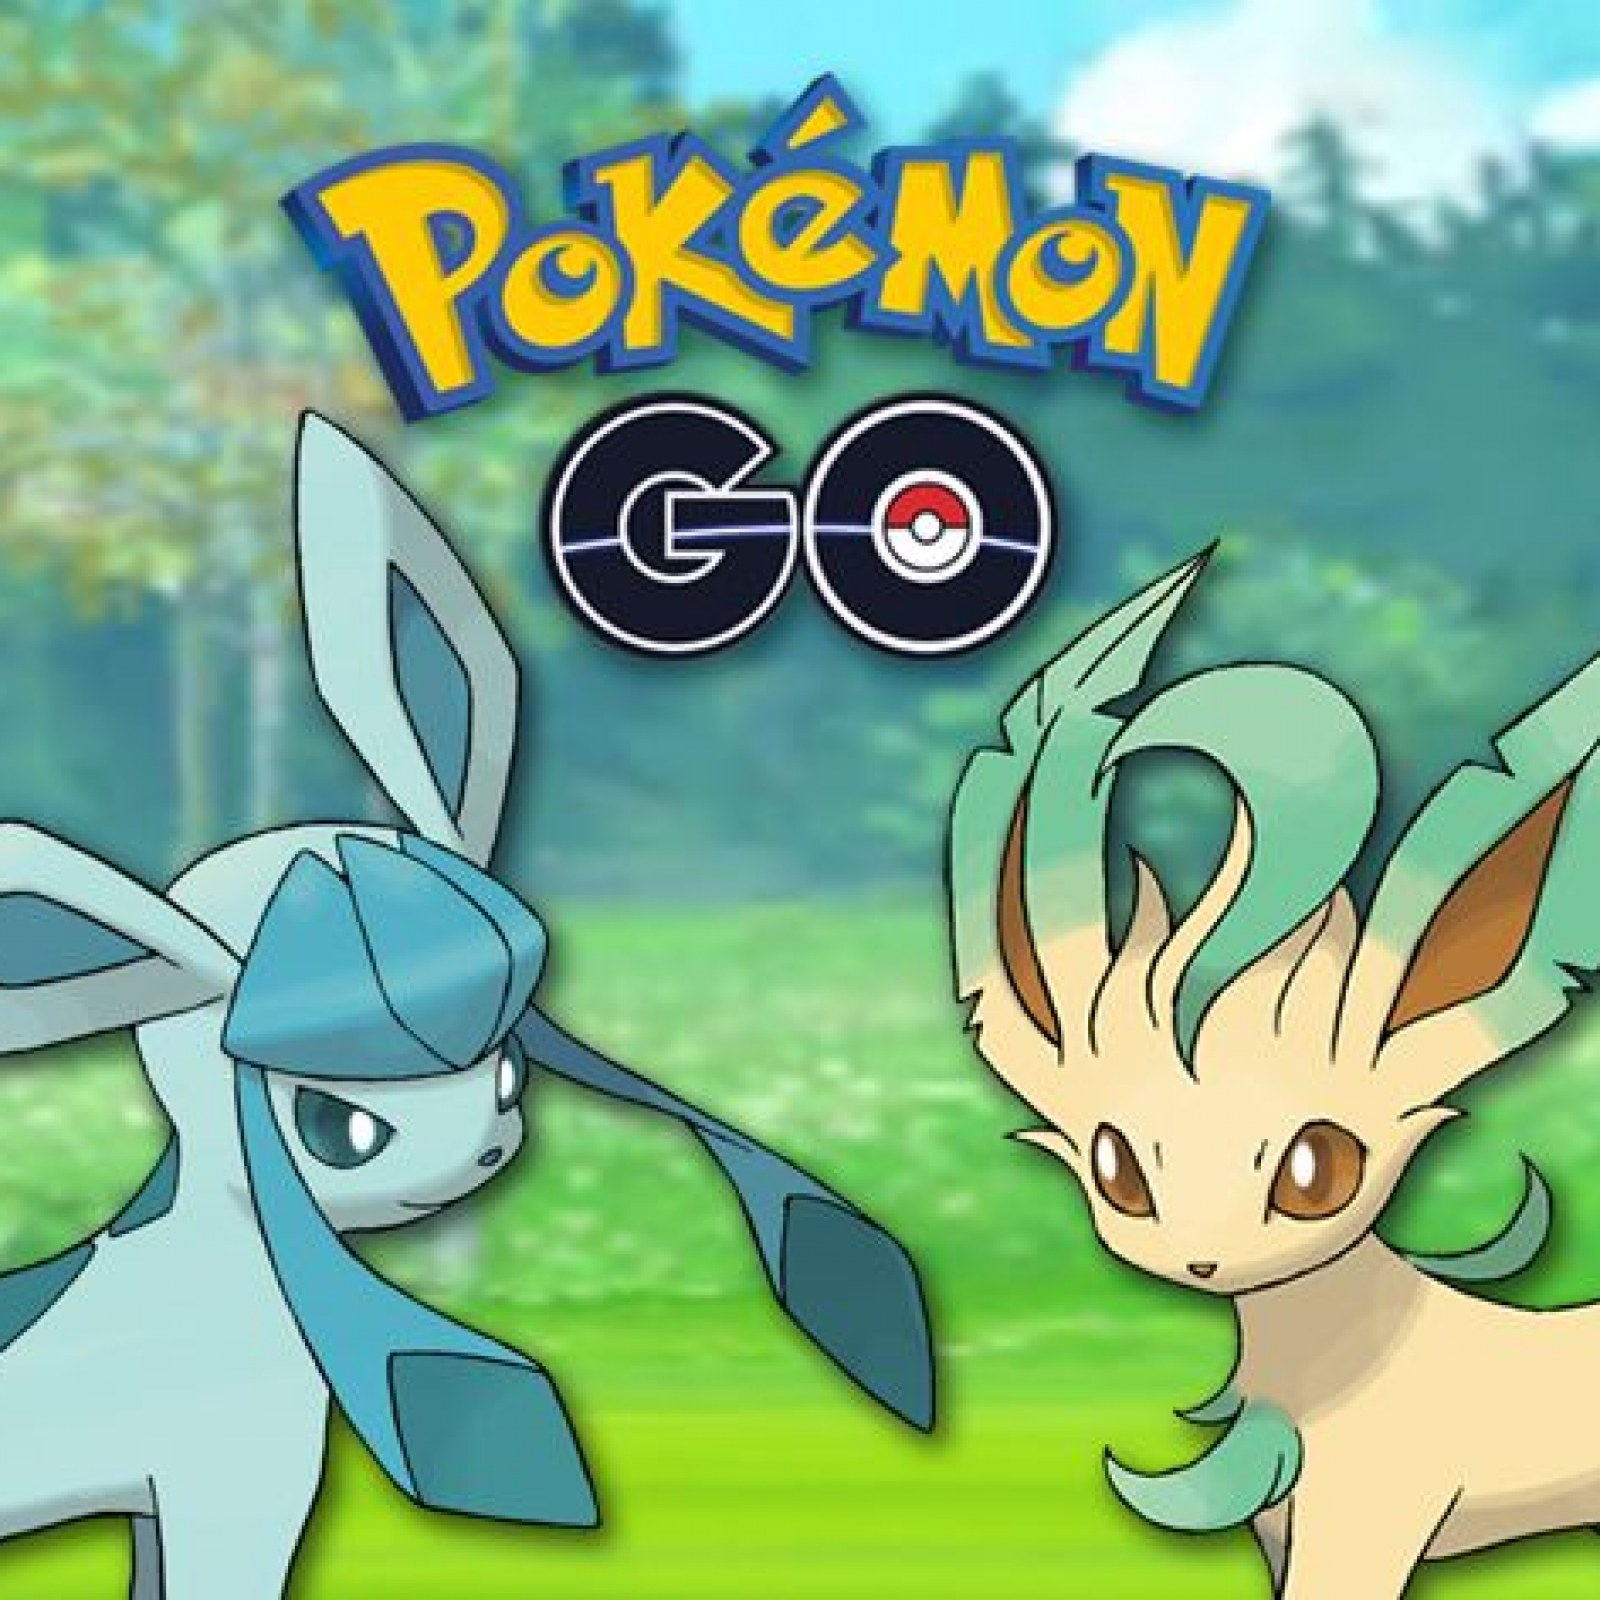 Pokémon Go Leafeon And Glaceon Name Trick How To Guarantee Each Eeveelution